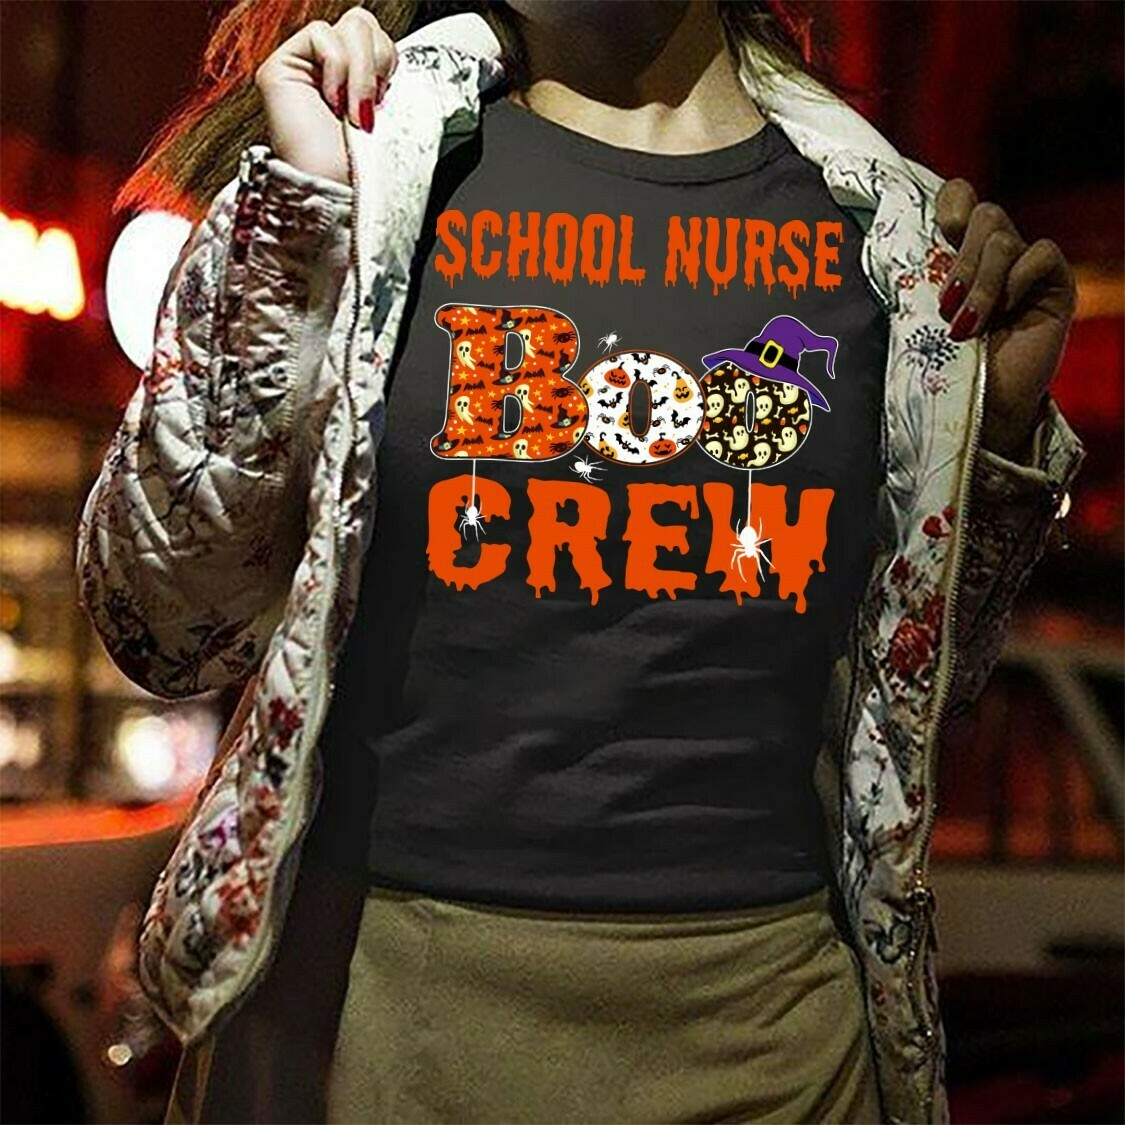 School Nurse Boo Crew Boo Bees Halloween Shirt Funny Boo Pair Impressive Perfect Gift idea For Yourself And Friends Long Sleeve Sweatshirt Hoodie Jolly Family Gifts